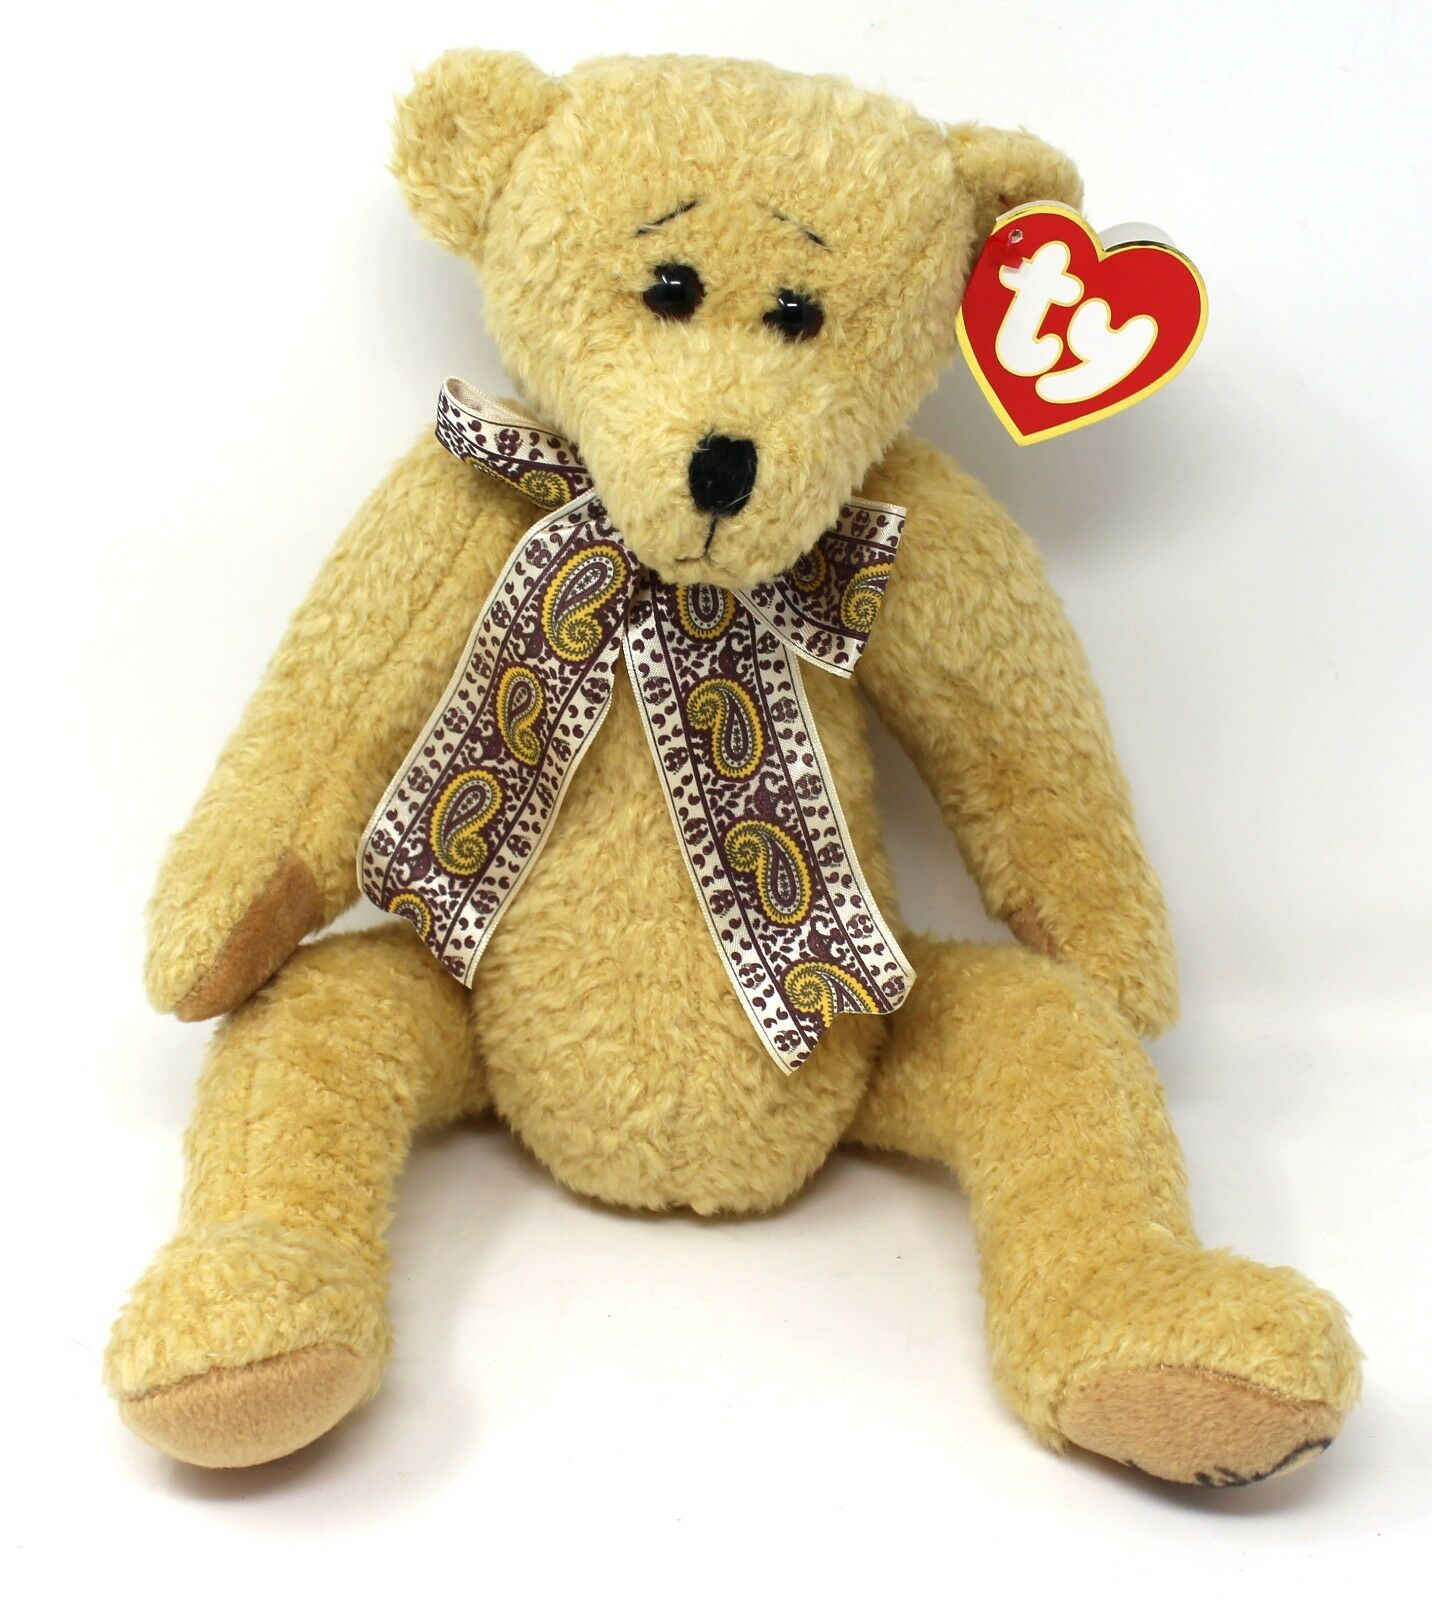 TY   Eleanor  BEAR SIGNED TWICE BY SALLY WINEY  RETIRED FULLY JOINTED style 5500